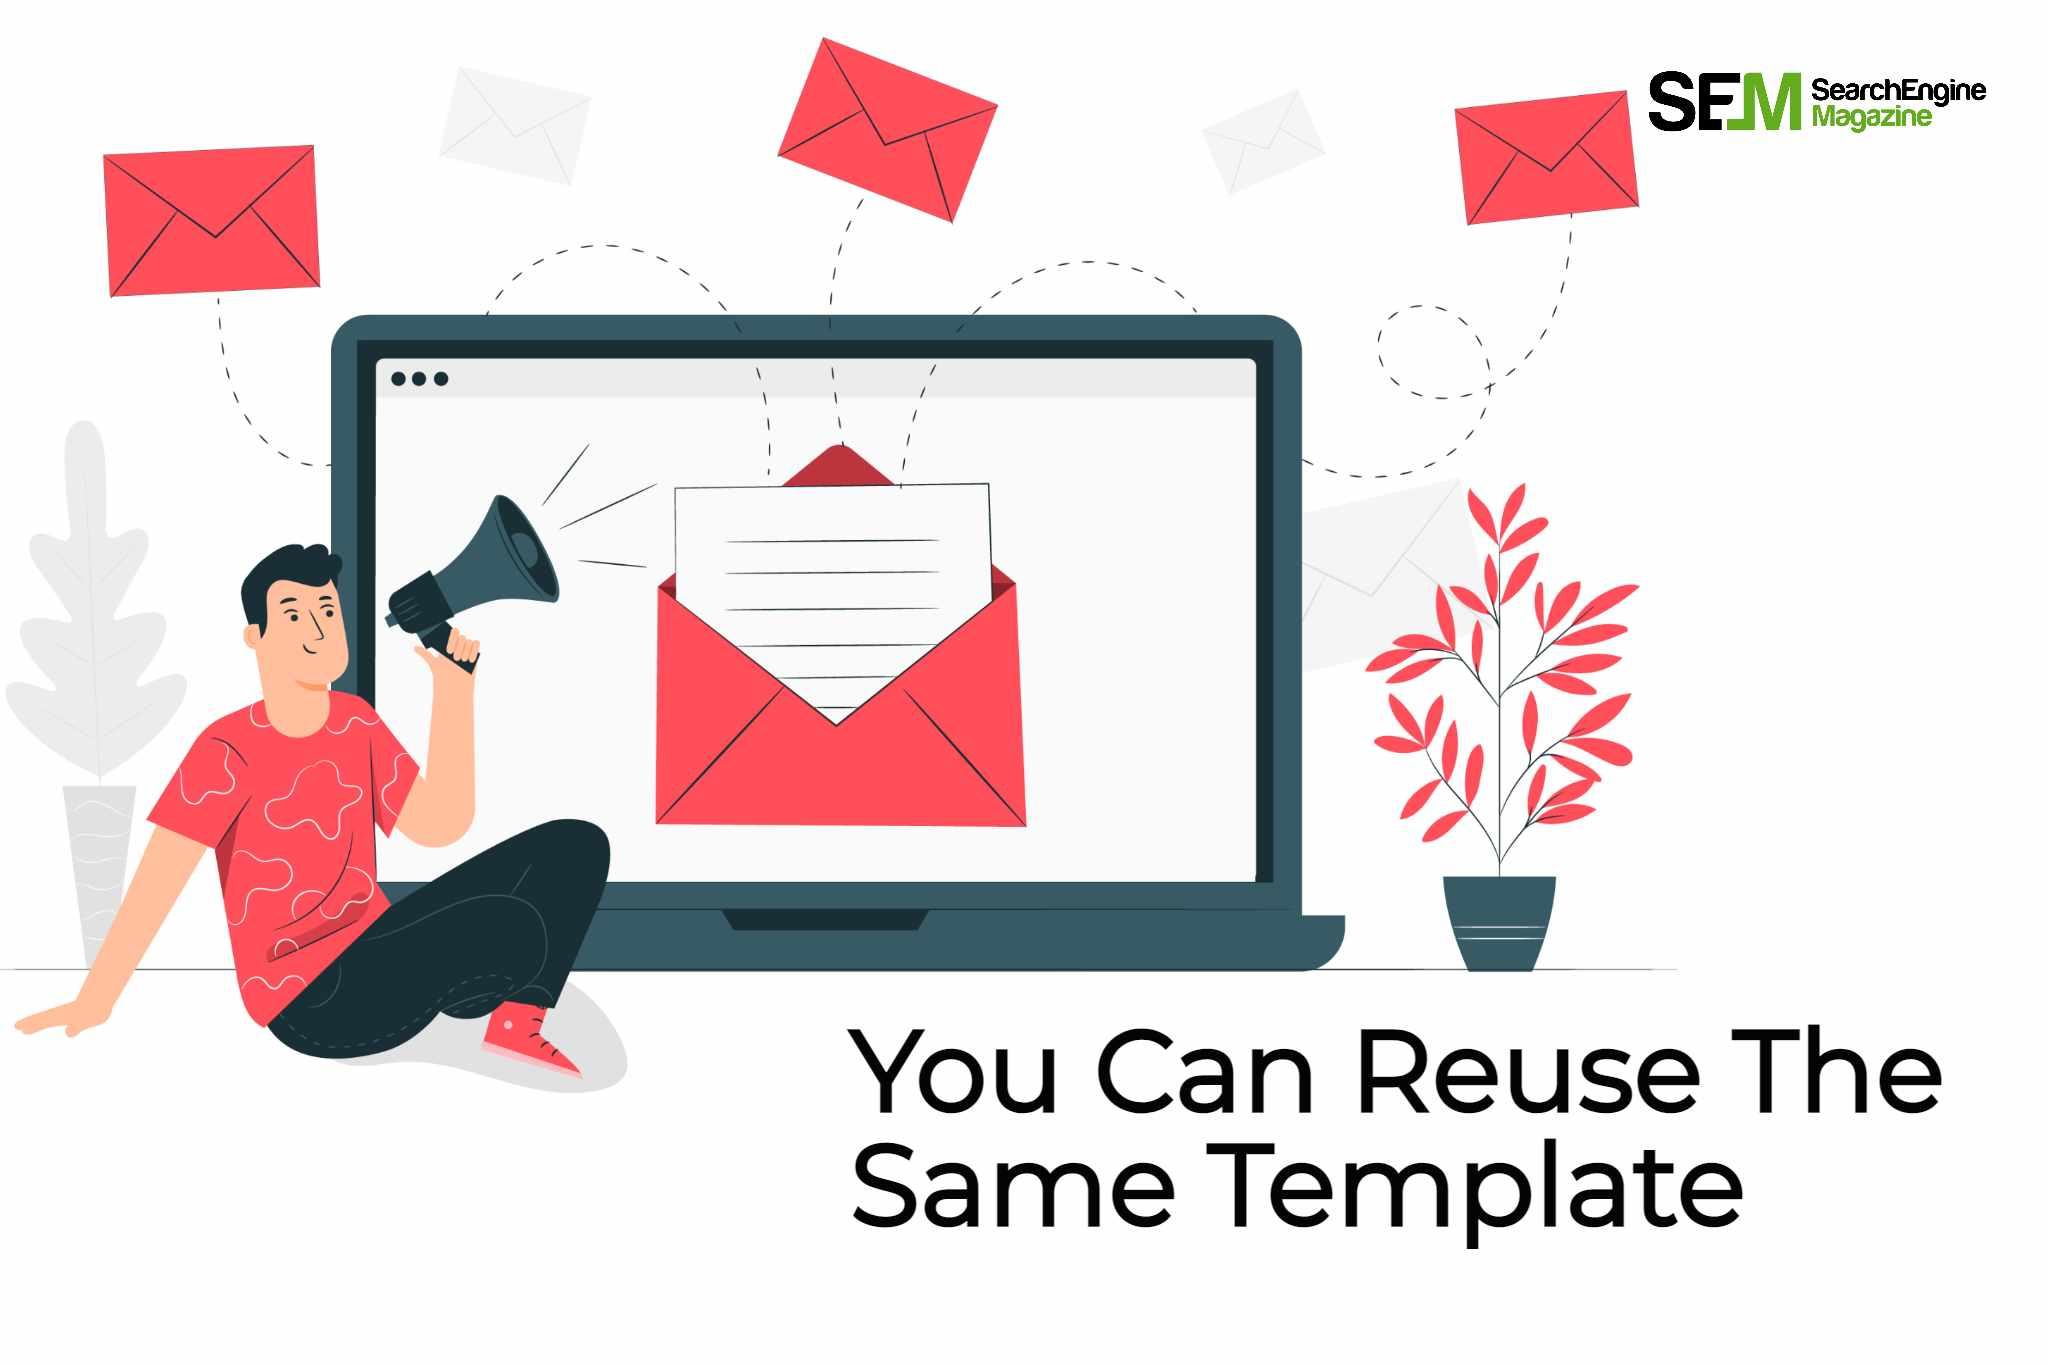 What is one of the benefits of using templates for your email marketing campaigns